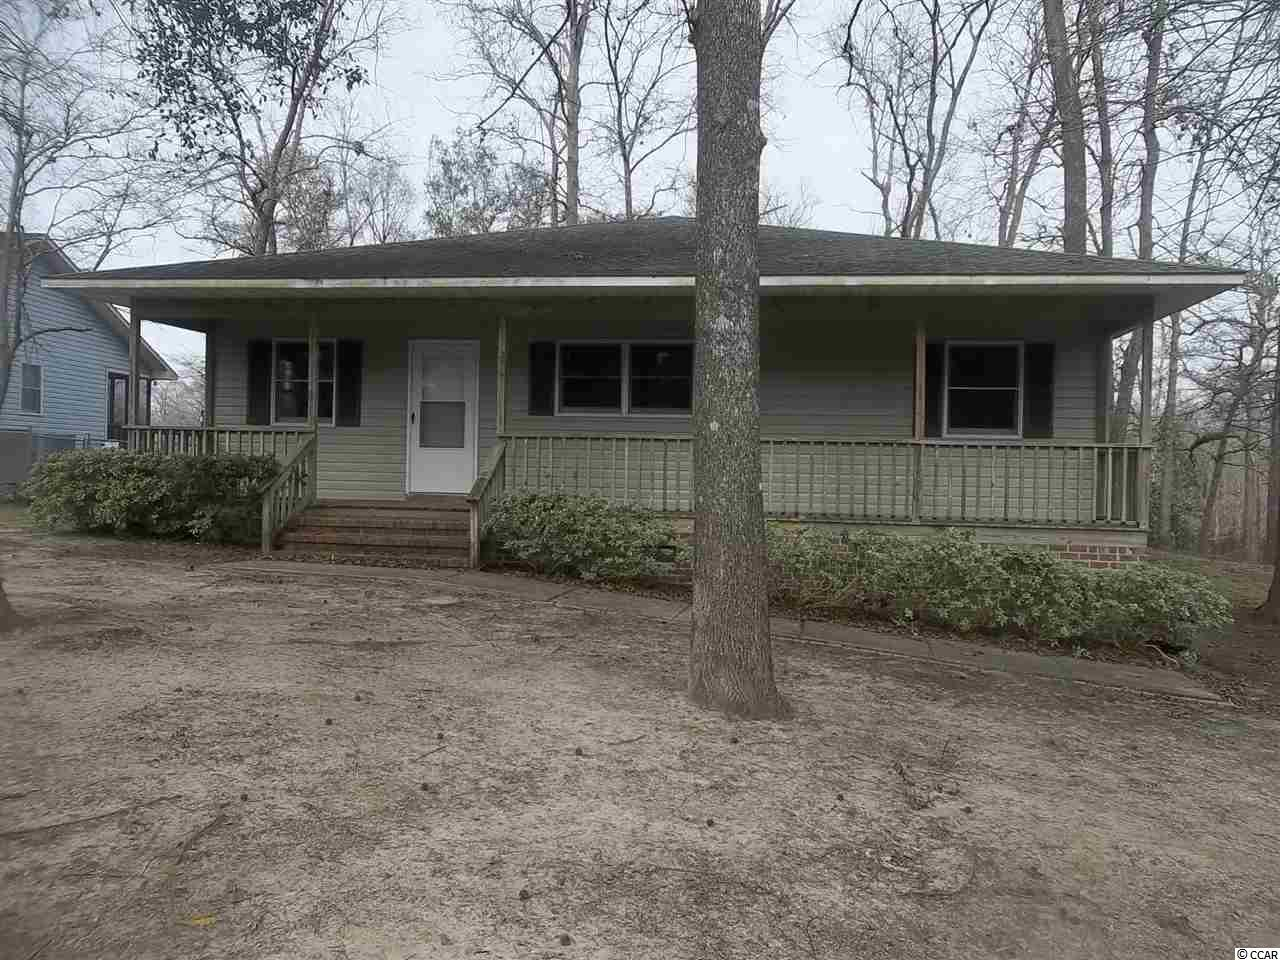 This house is on a HIGH lot that never floods, it overlooks Yauhannah Lake.  It  is right next to the boat landing.  It is on the lake so boat traffic is not a problem.  It has 4 bedrooms and 2 baths, a jenn-air range in the kitchen, fireplace, 12x40 screen porch on the rear overlooking the lake.  It is a sportsmans paradise, it has 170 feet on Yauhannah Lake.